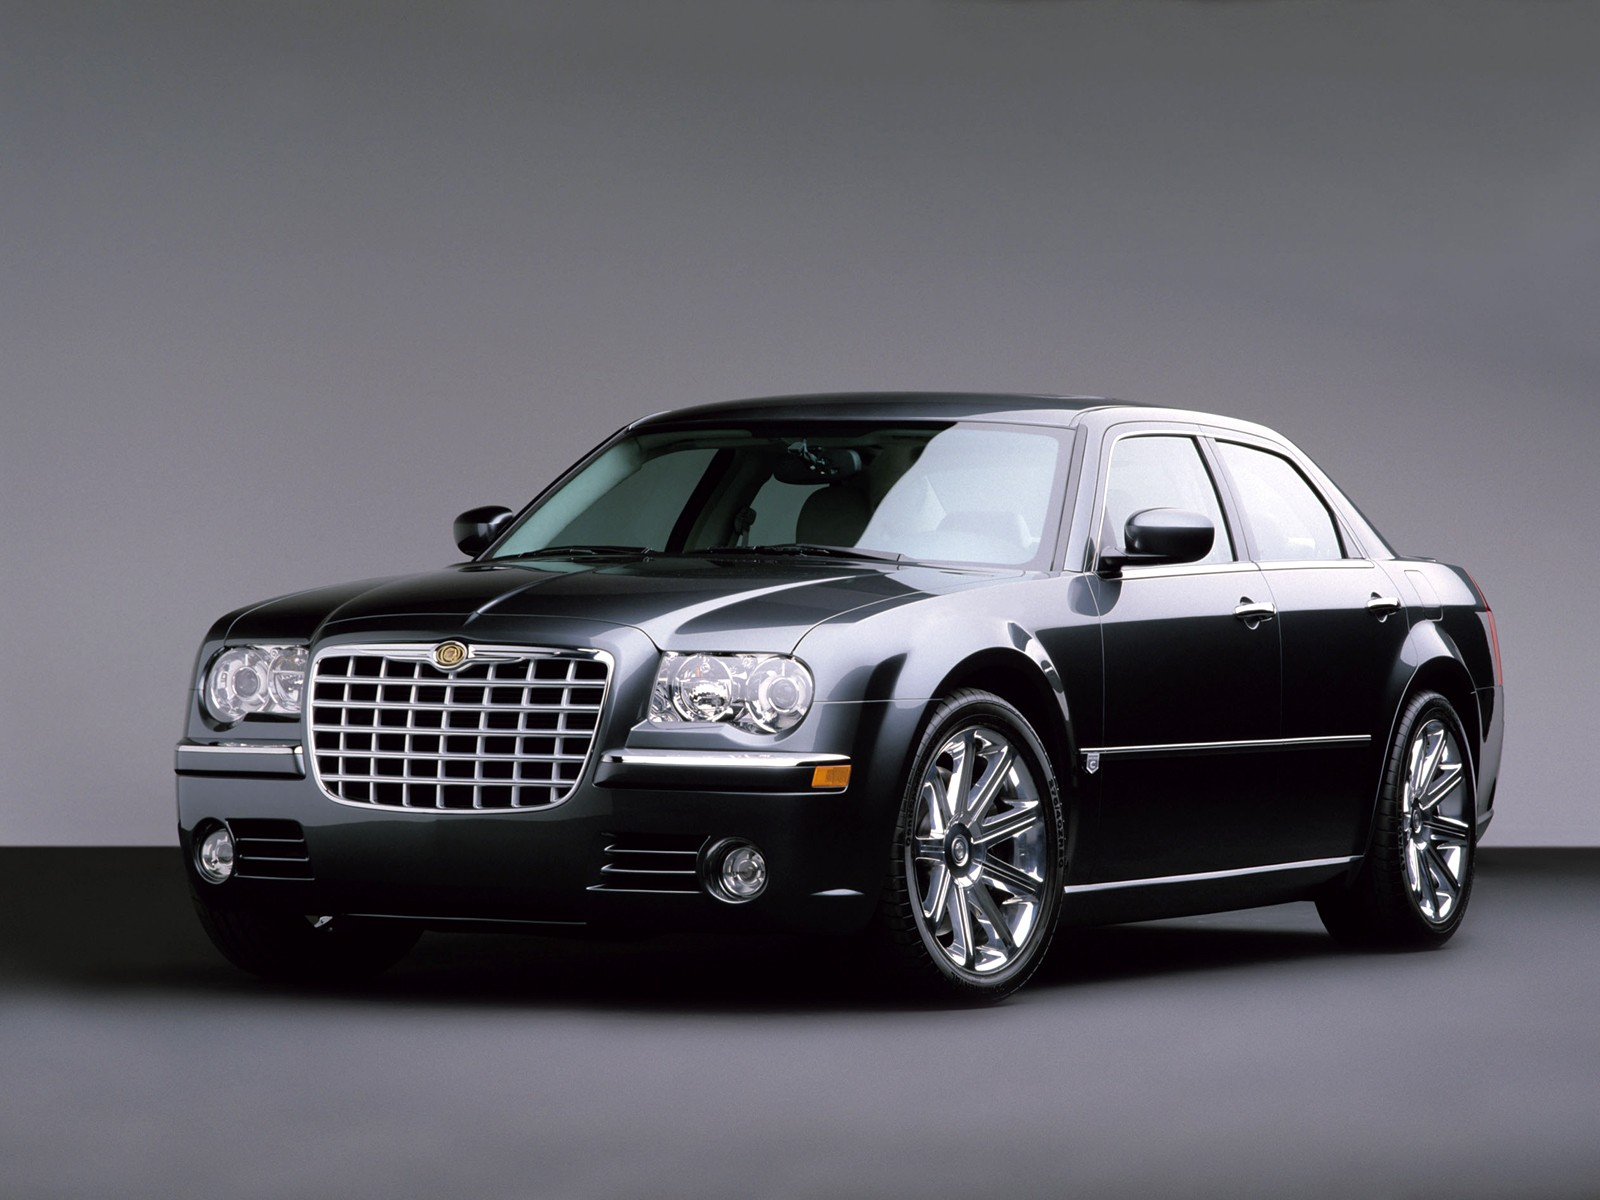 2008 Chrysler 300 C picture